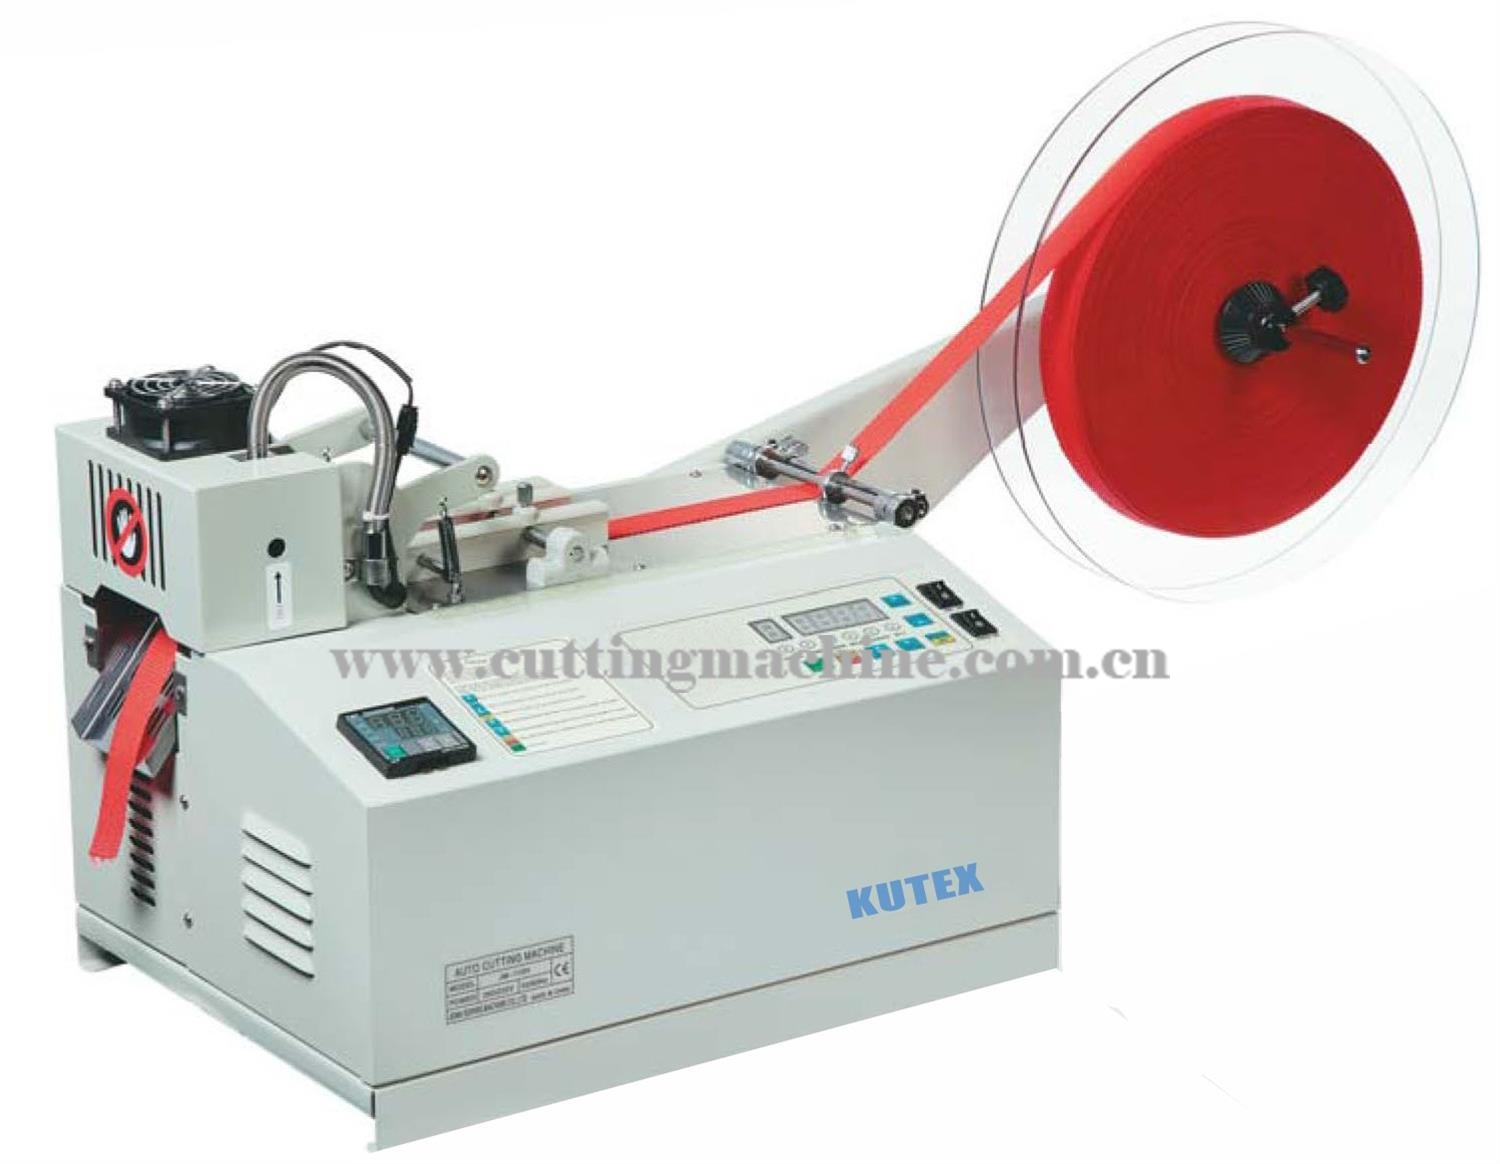 Hot Knife Webbing Cutter